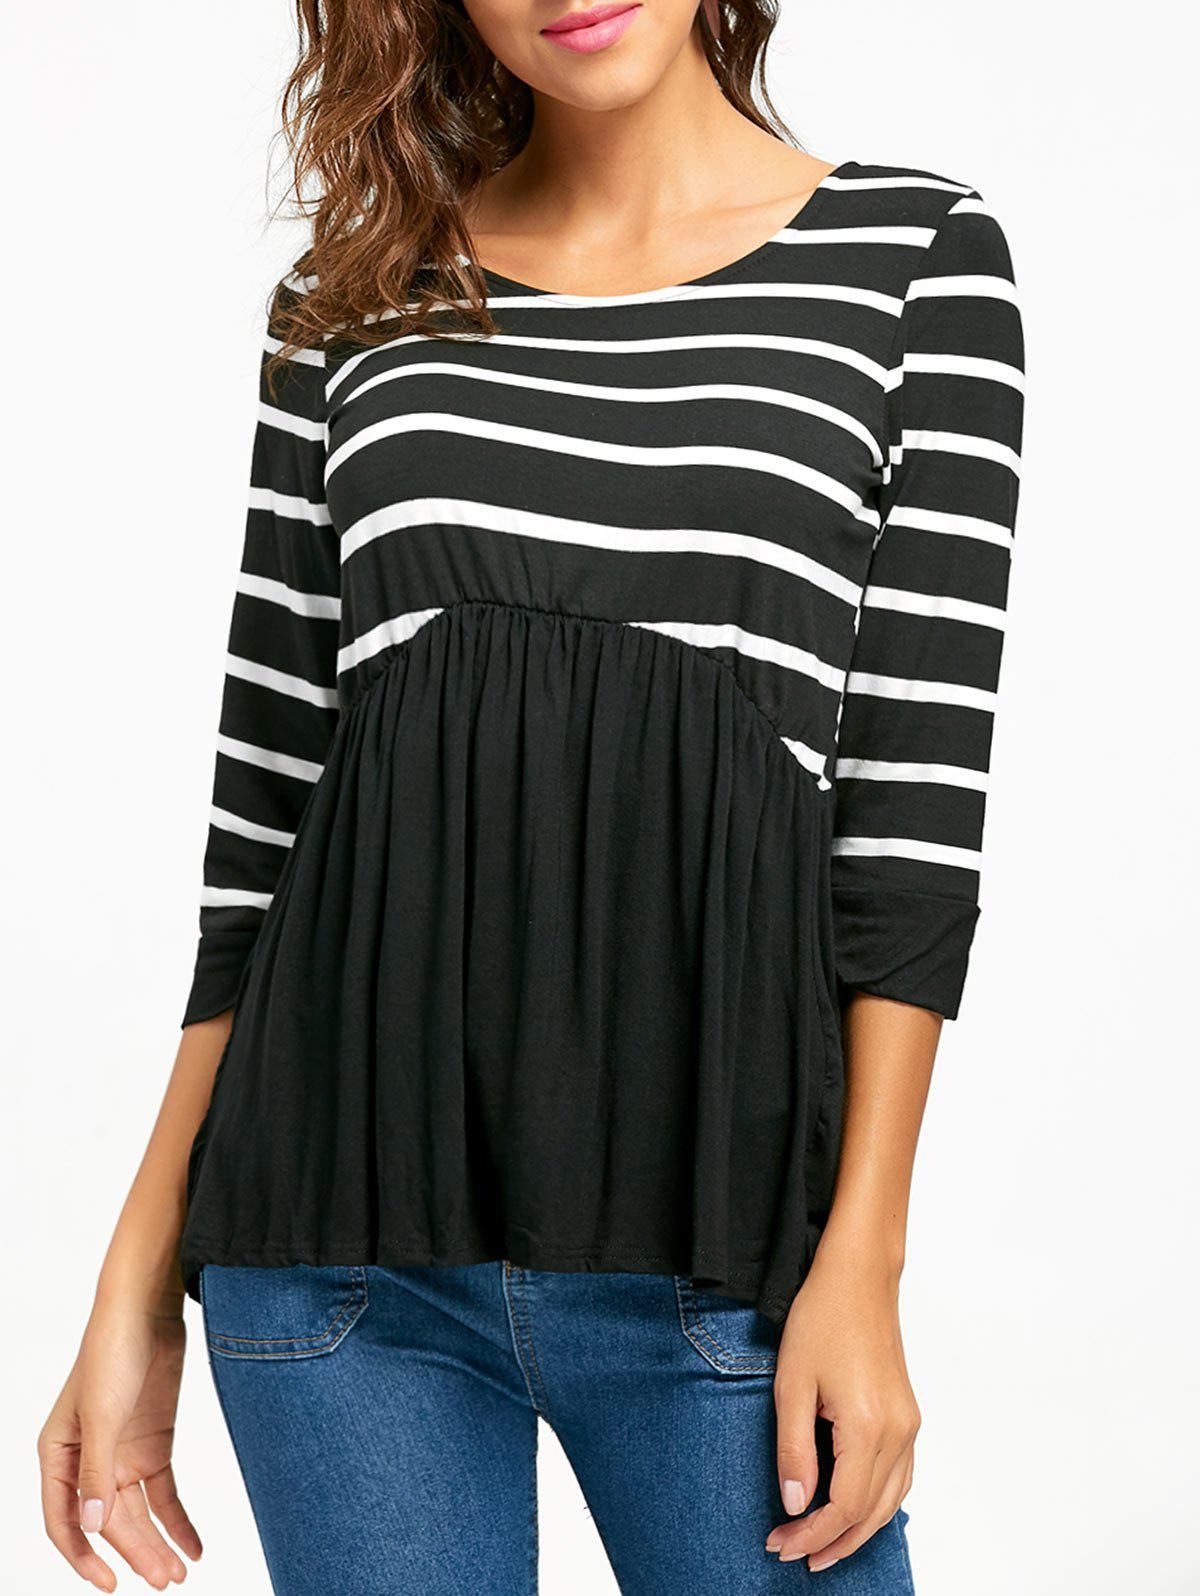 Striped Panel Casual Tunic Top - BLACK 2XL